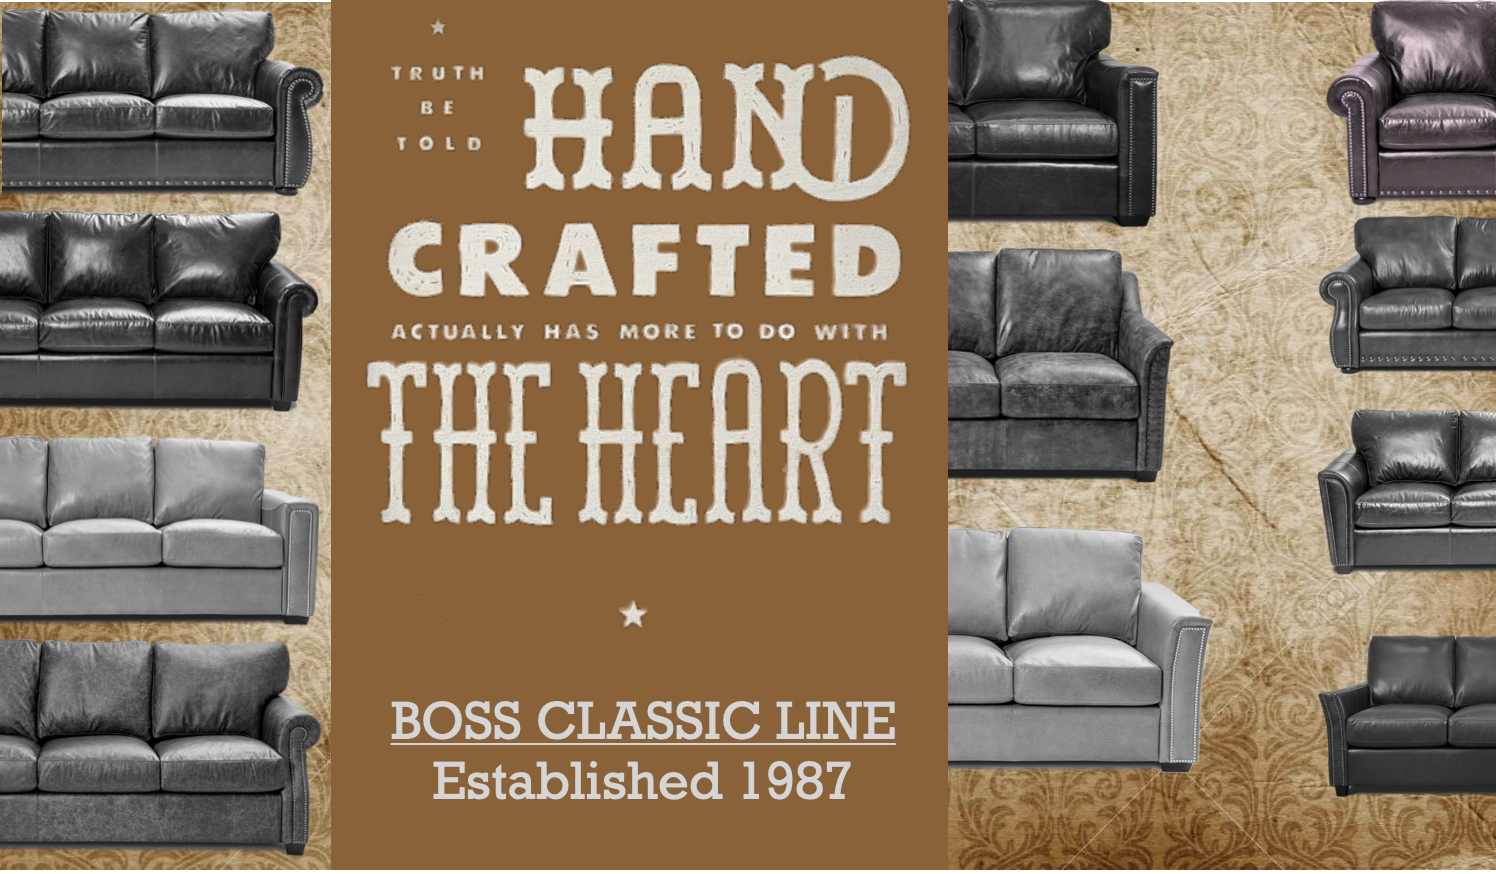 Boss leather Classic leather line